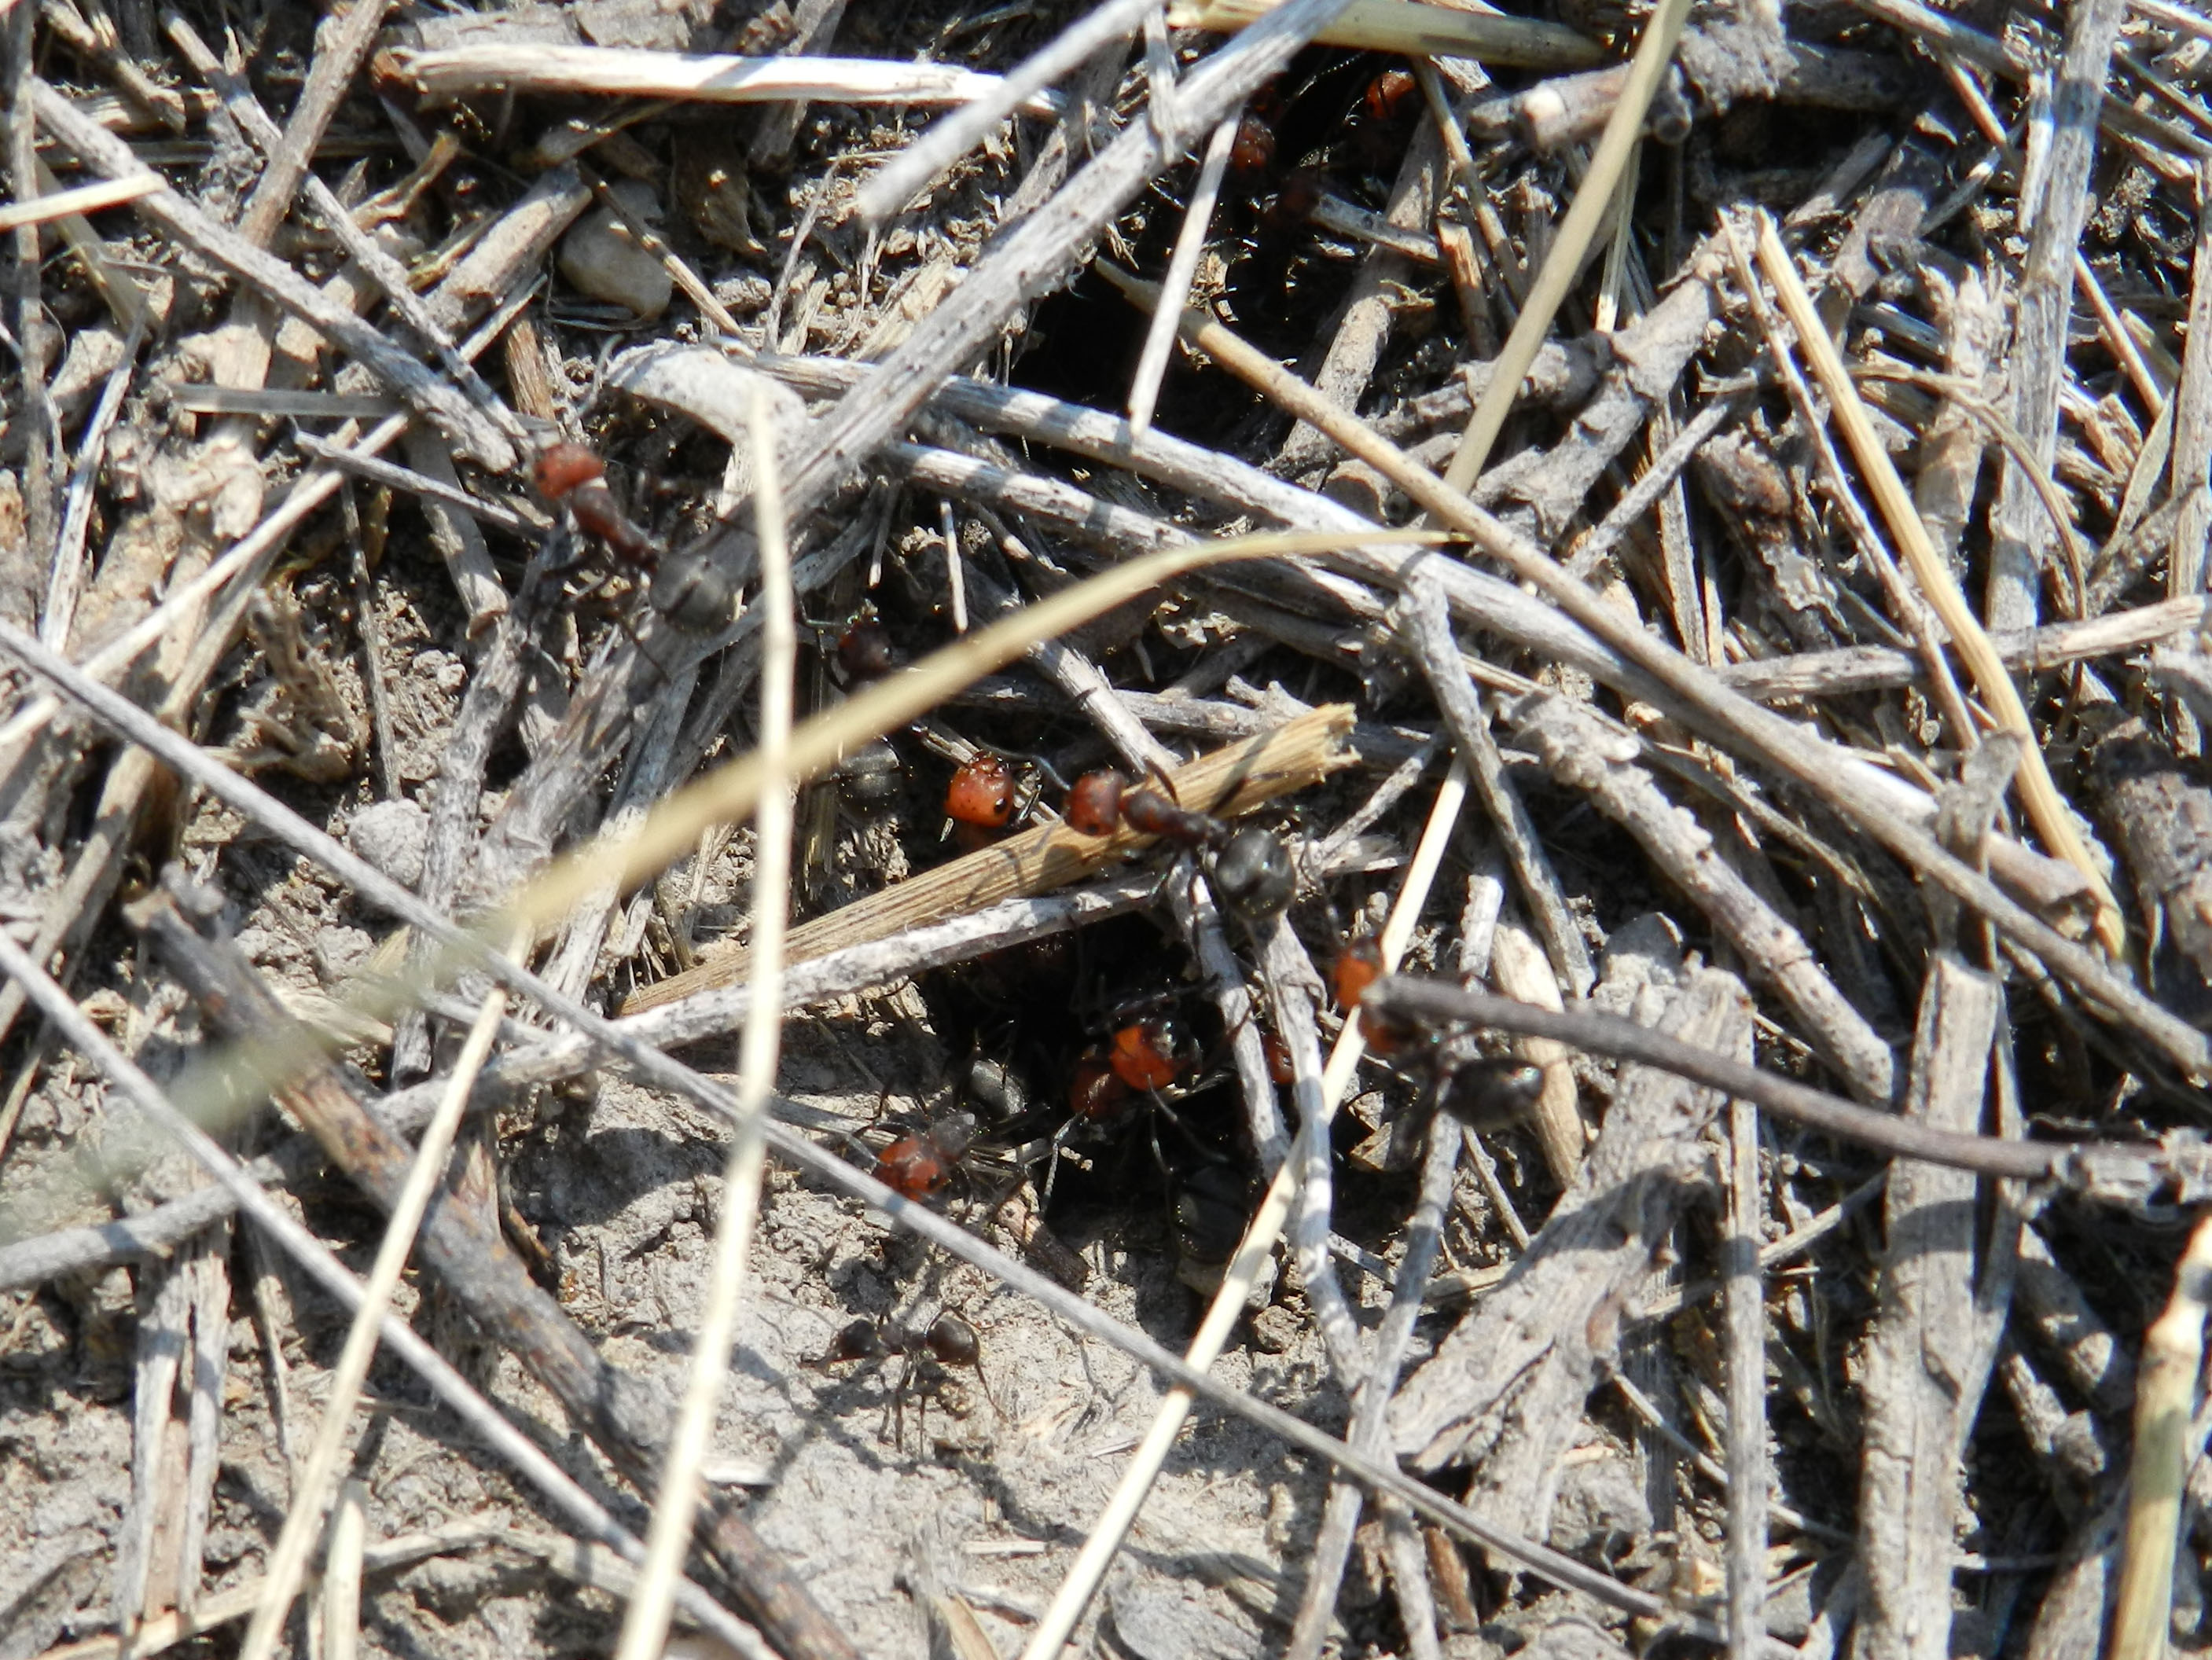 Montana-Mound-Nest-Ants-Closeup